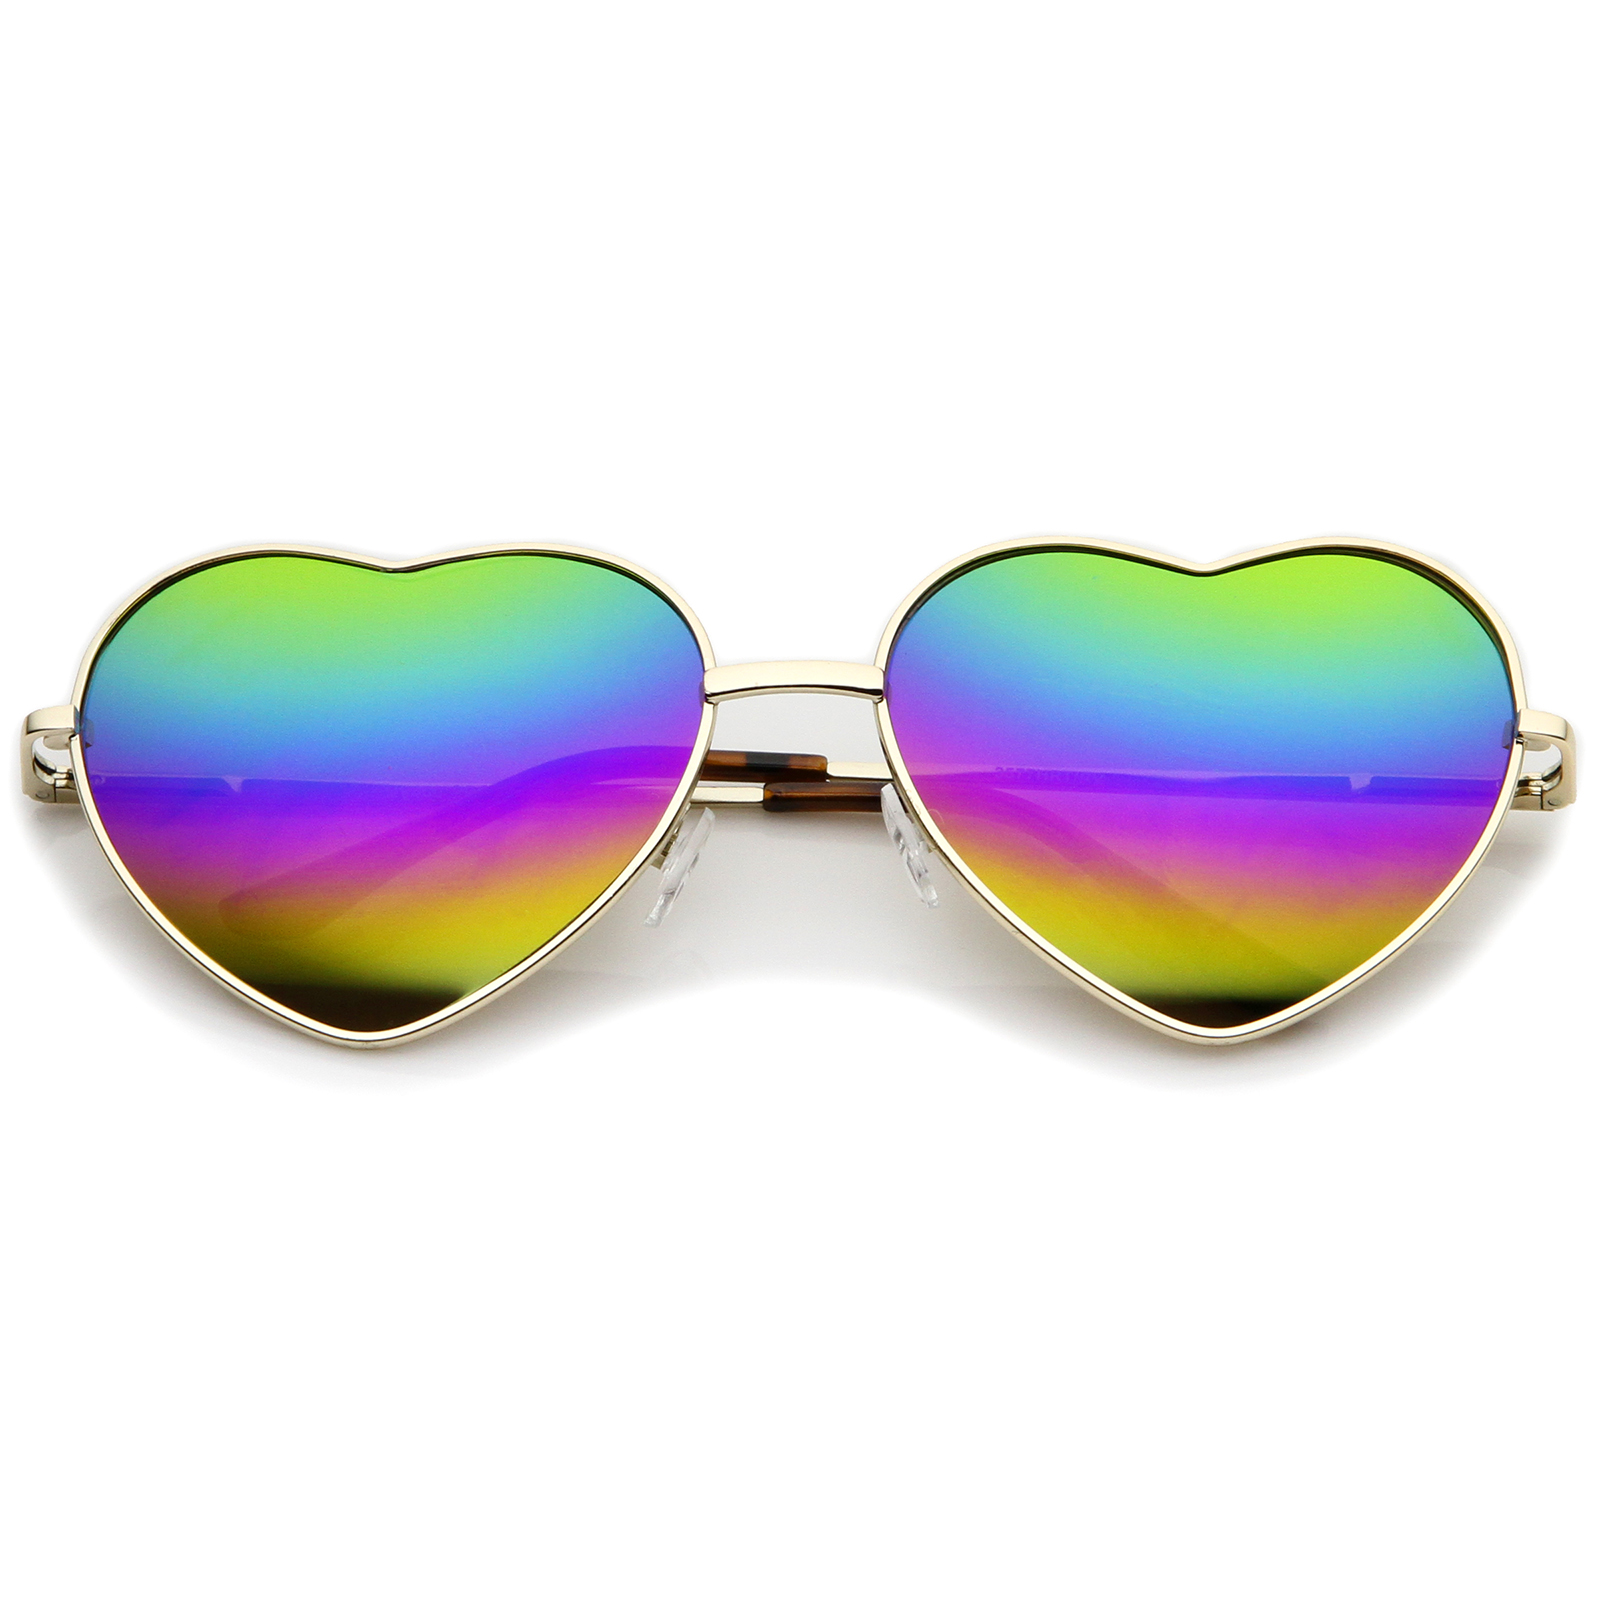 Sunglasses with Colored Frame